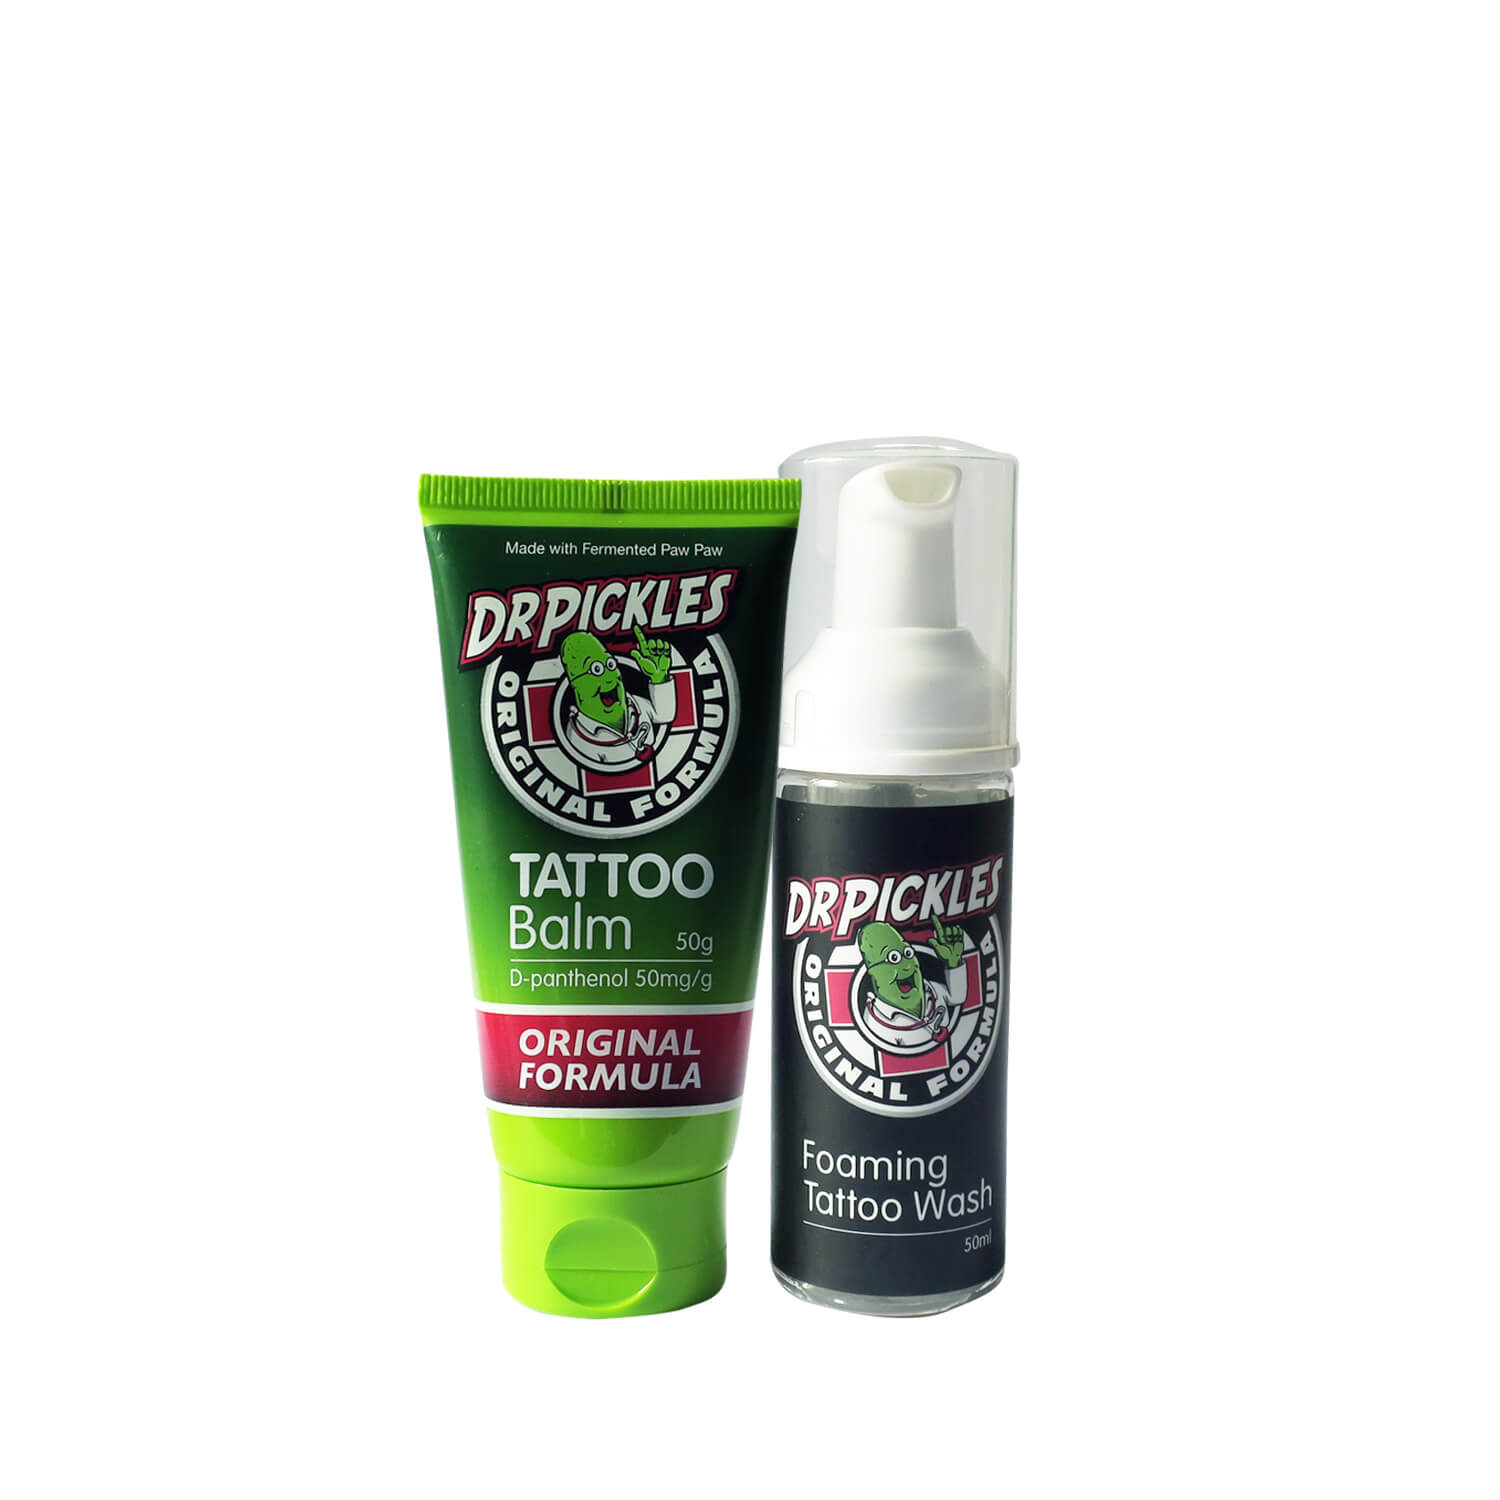 Dr Pickles Tattoo Balm 50g And Foaming Tattoo Wash Tattcare Limited